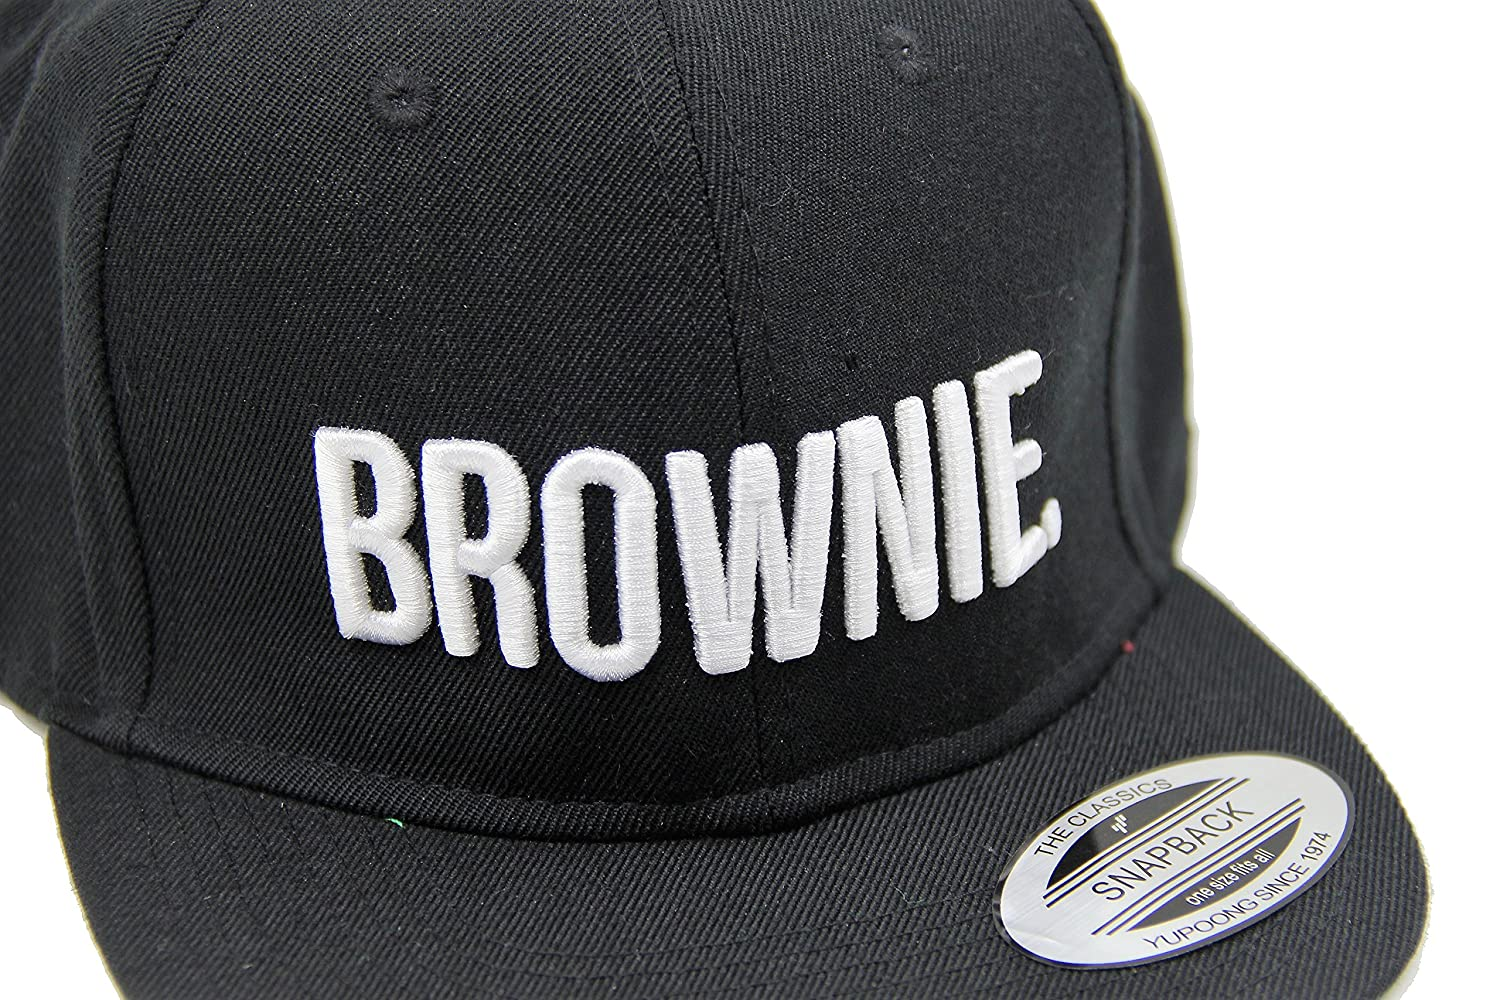 df42a5f0ff120c ASVP Shop® 5-Panel Snapback Cap with Embroidered 'Brownie' Lettering Flat  Peak and Stylish Retro Hiphop/Rapper Design in Black with White Text - Size  ...